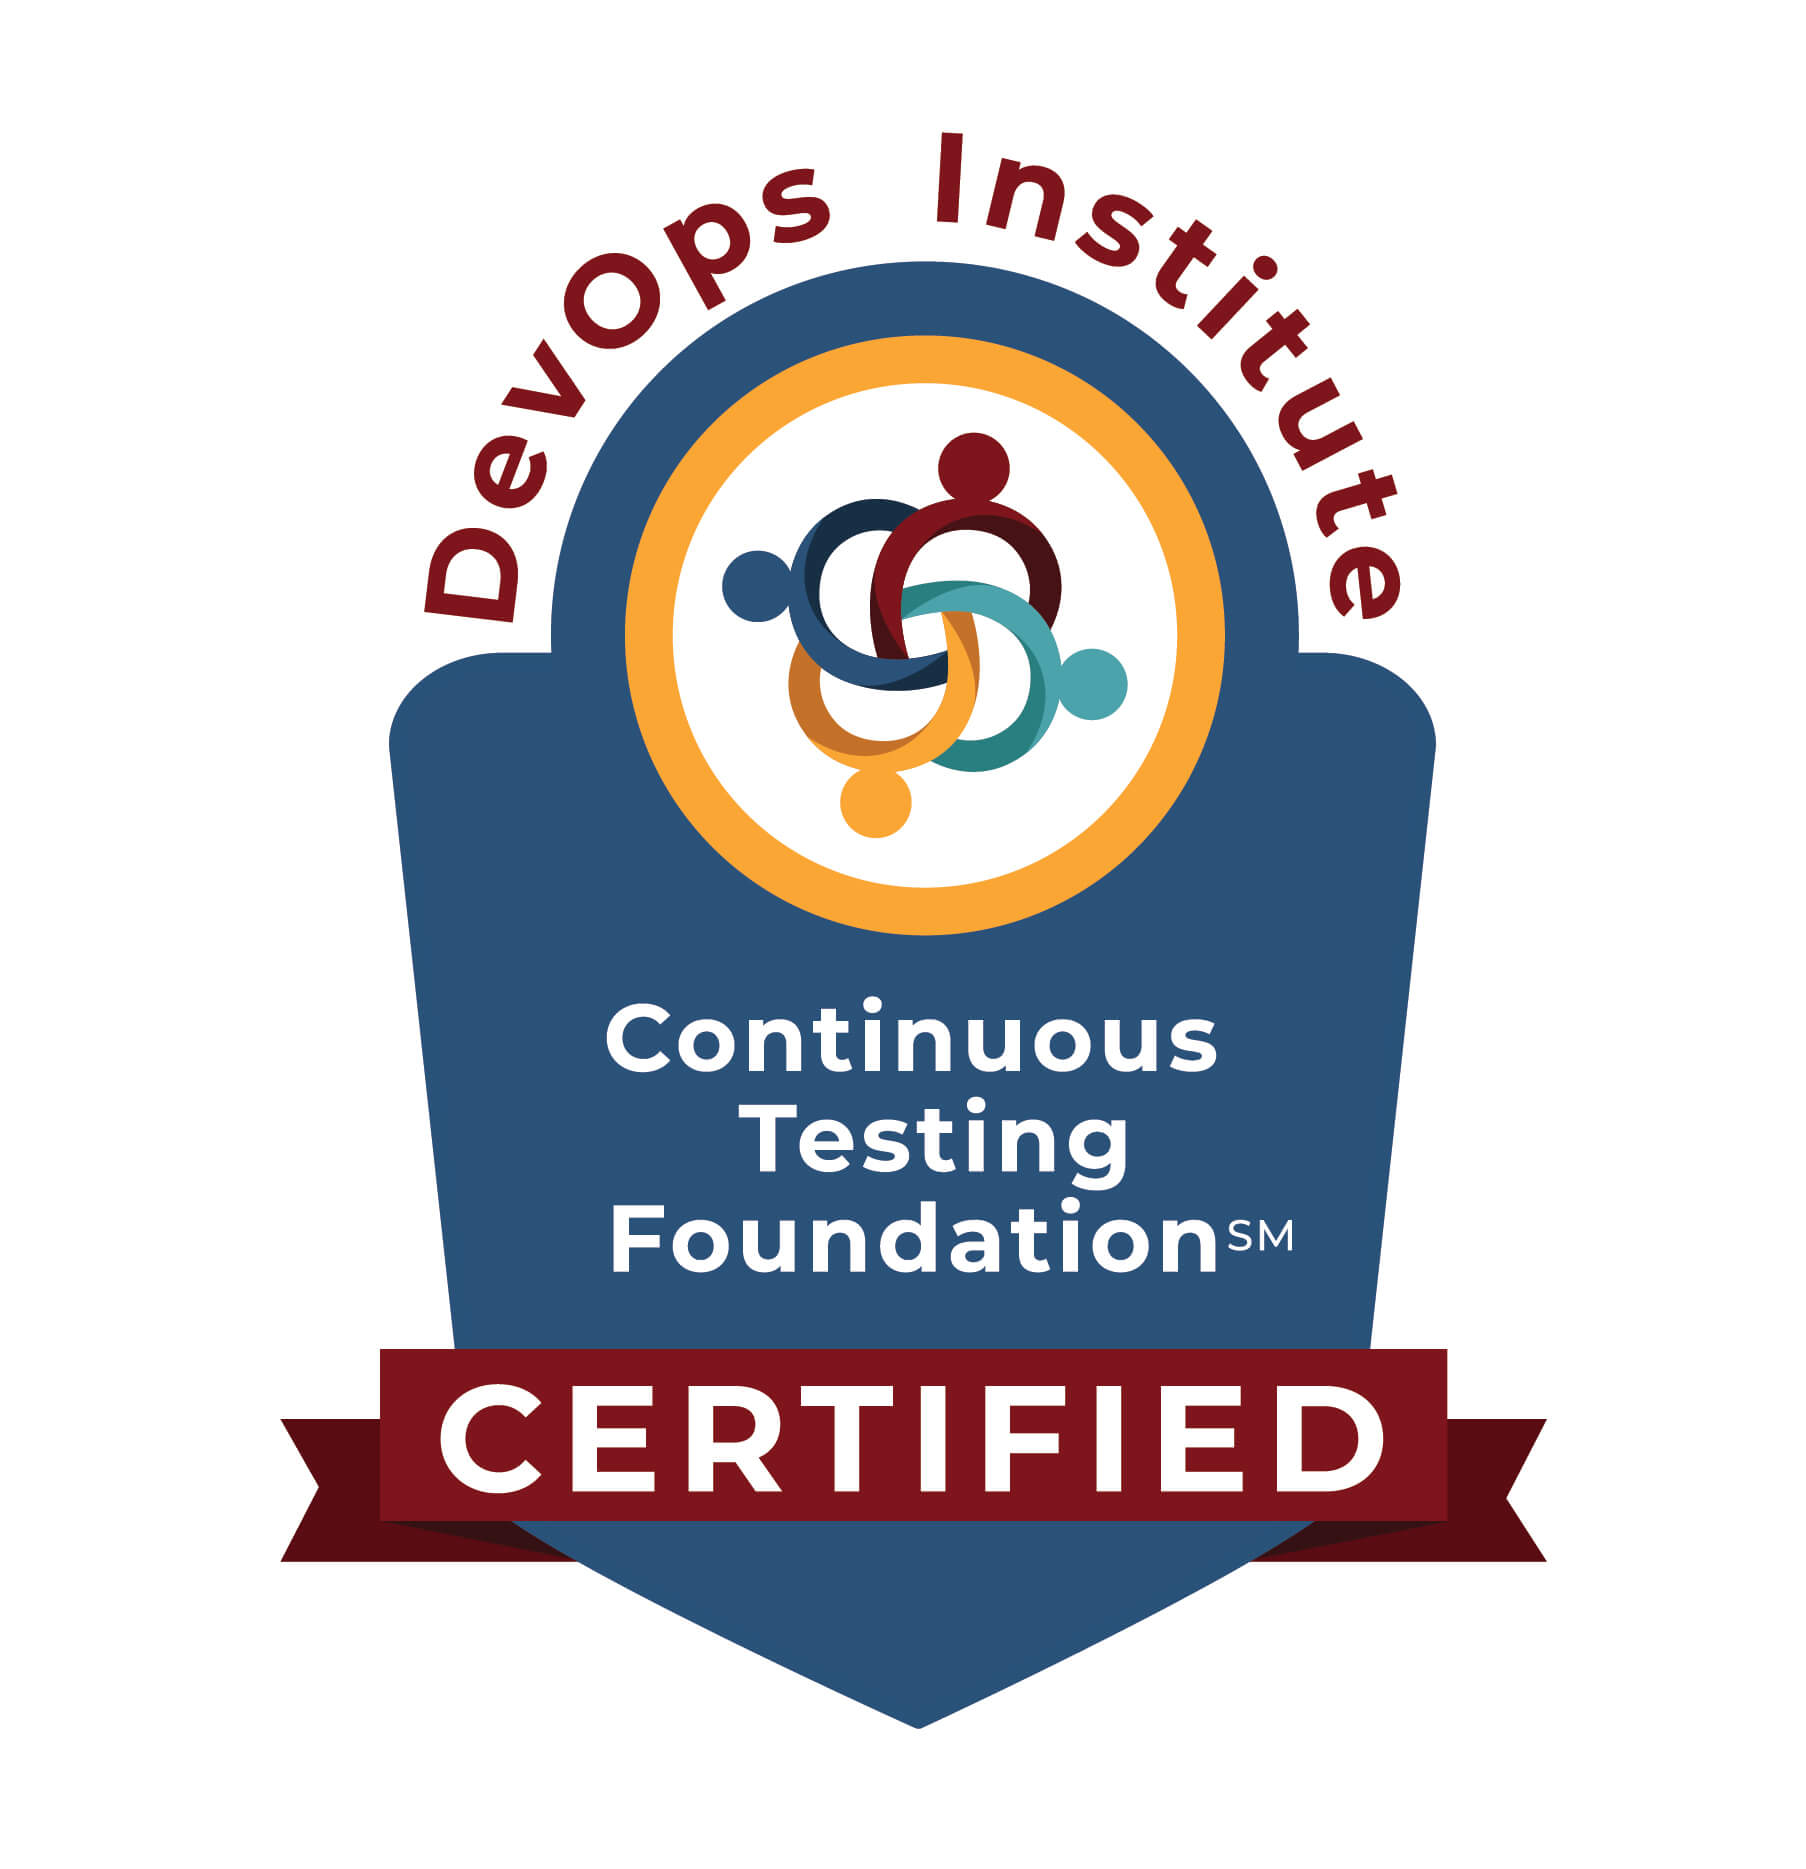 Continuous Testing Foundation